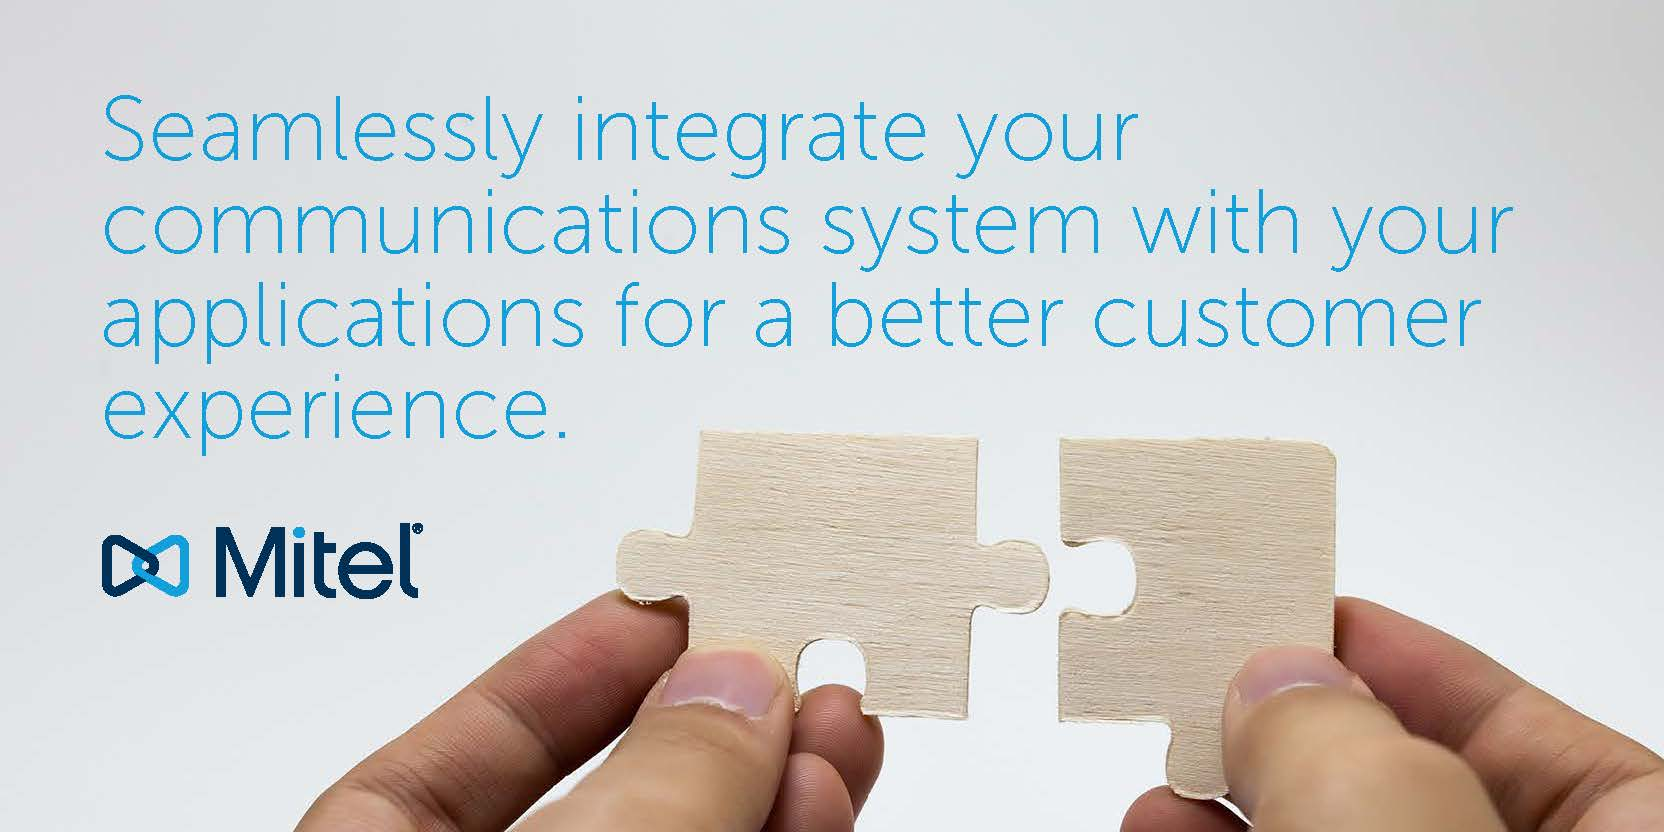 Why Your Business Phone System Should Integrate with Your Applications